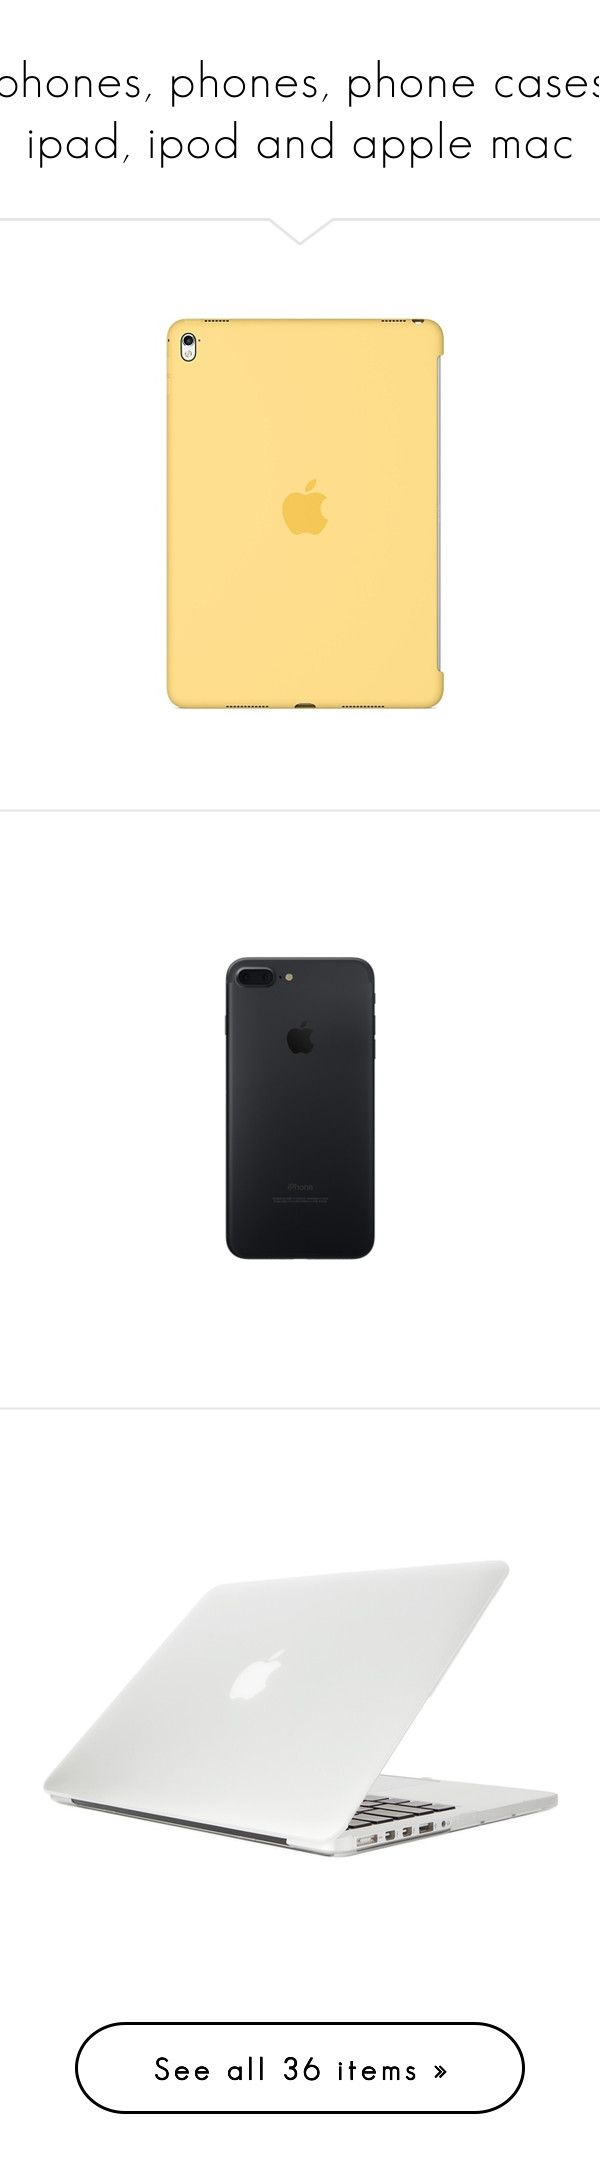 """""""iphones, phones, phone cases, ipad, ipod and apple mac"""" by geazybxtch24 ❤ liked on Polyvore featuring accessories, tech accessories, electronics, tech, men's fashion, men's accessories, men's tech accessories, no color, phone and phone cases"""